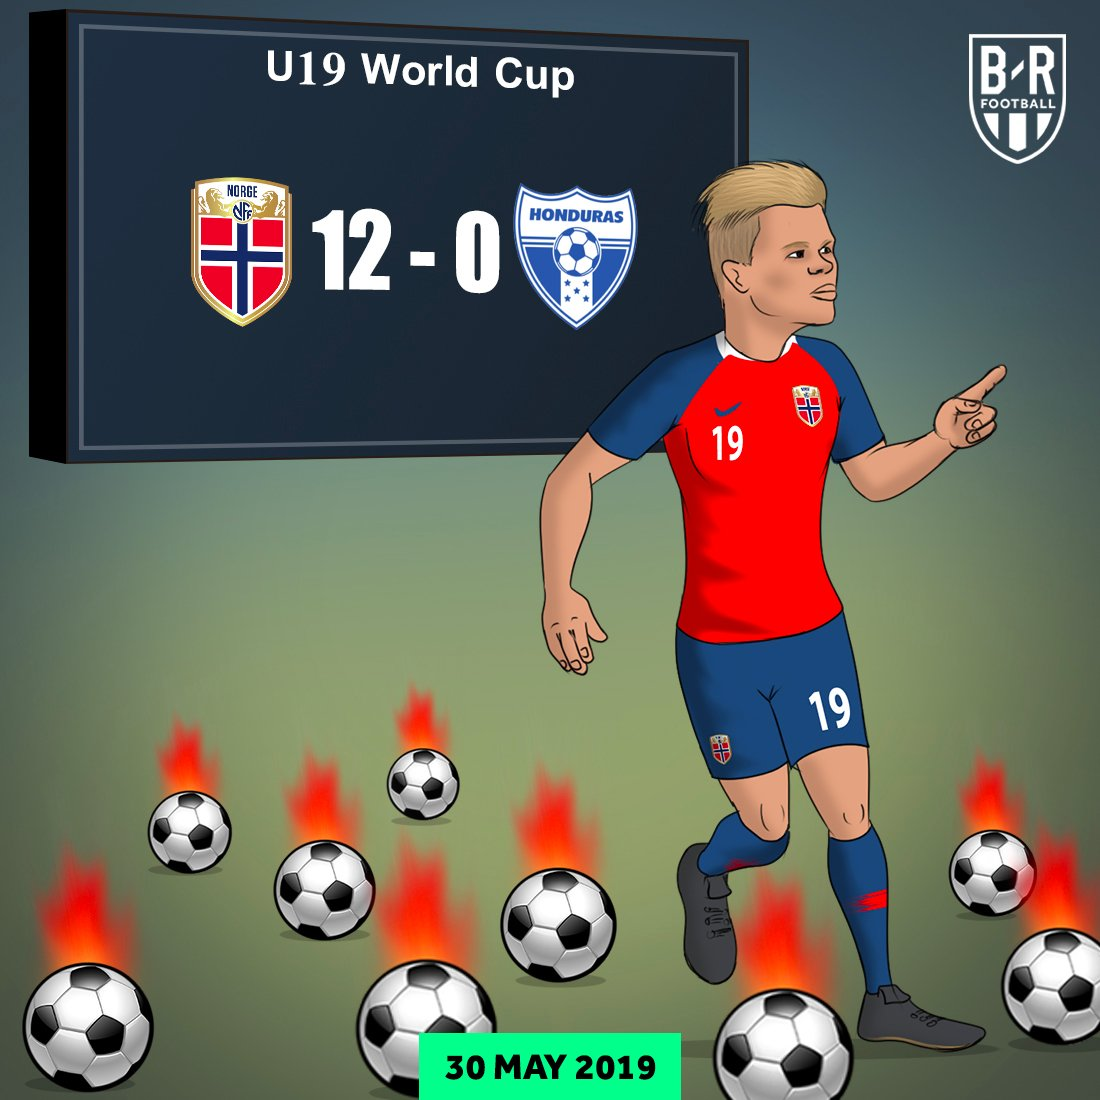 On this day last year, Erling Haaland scored a hat-trick of hat-tricks in the U20 World Cup. He hasnt stopped scoring since...